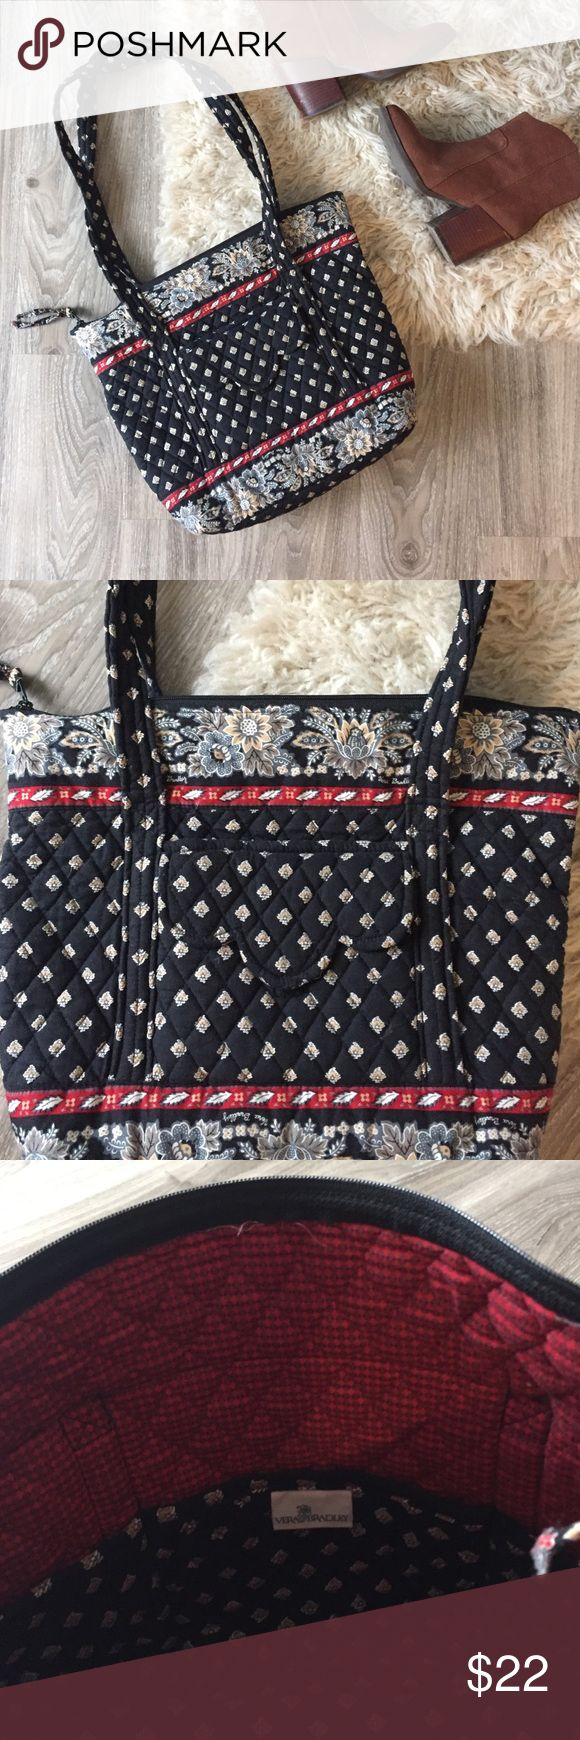 Vera Bradley Tote Bag Adorable Very Bradley tote bag in a classic black pattern that retired in 2005. Inside and outside pockets, super functional! Shown next to a wine bottle for size reference (please note, it can tote wine 🍷 😊). No flaws! Vera Bradley Bags